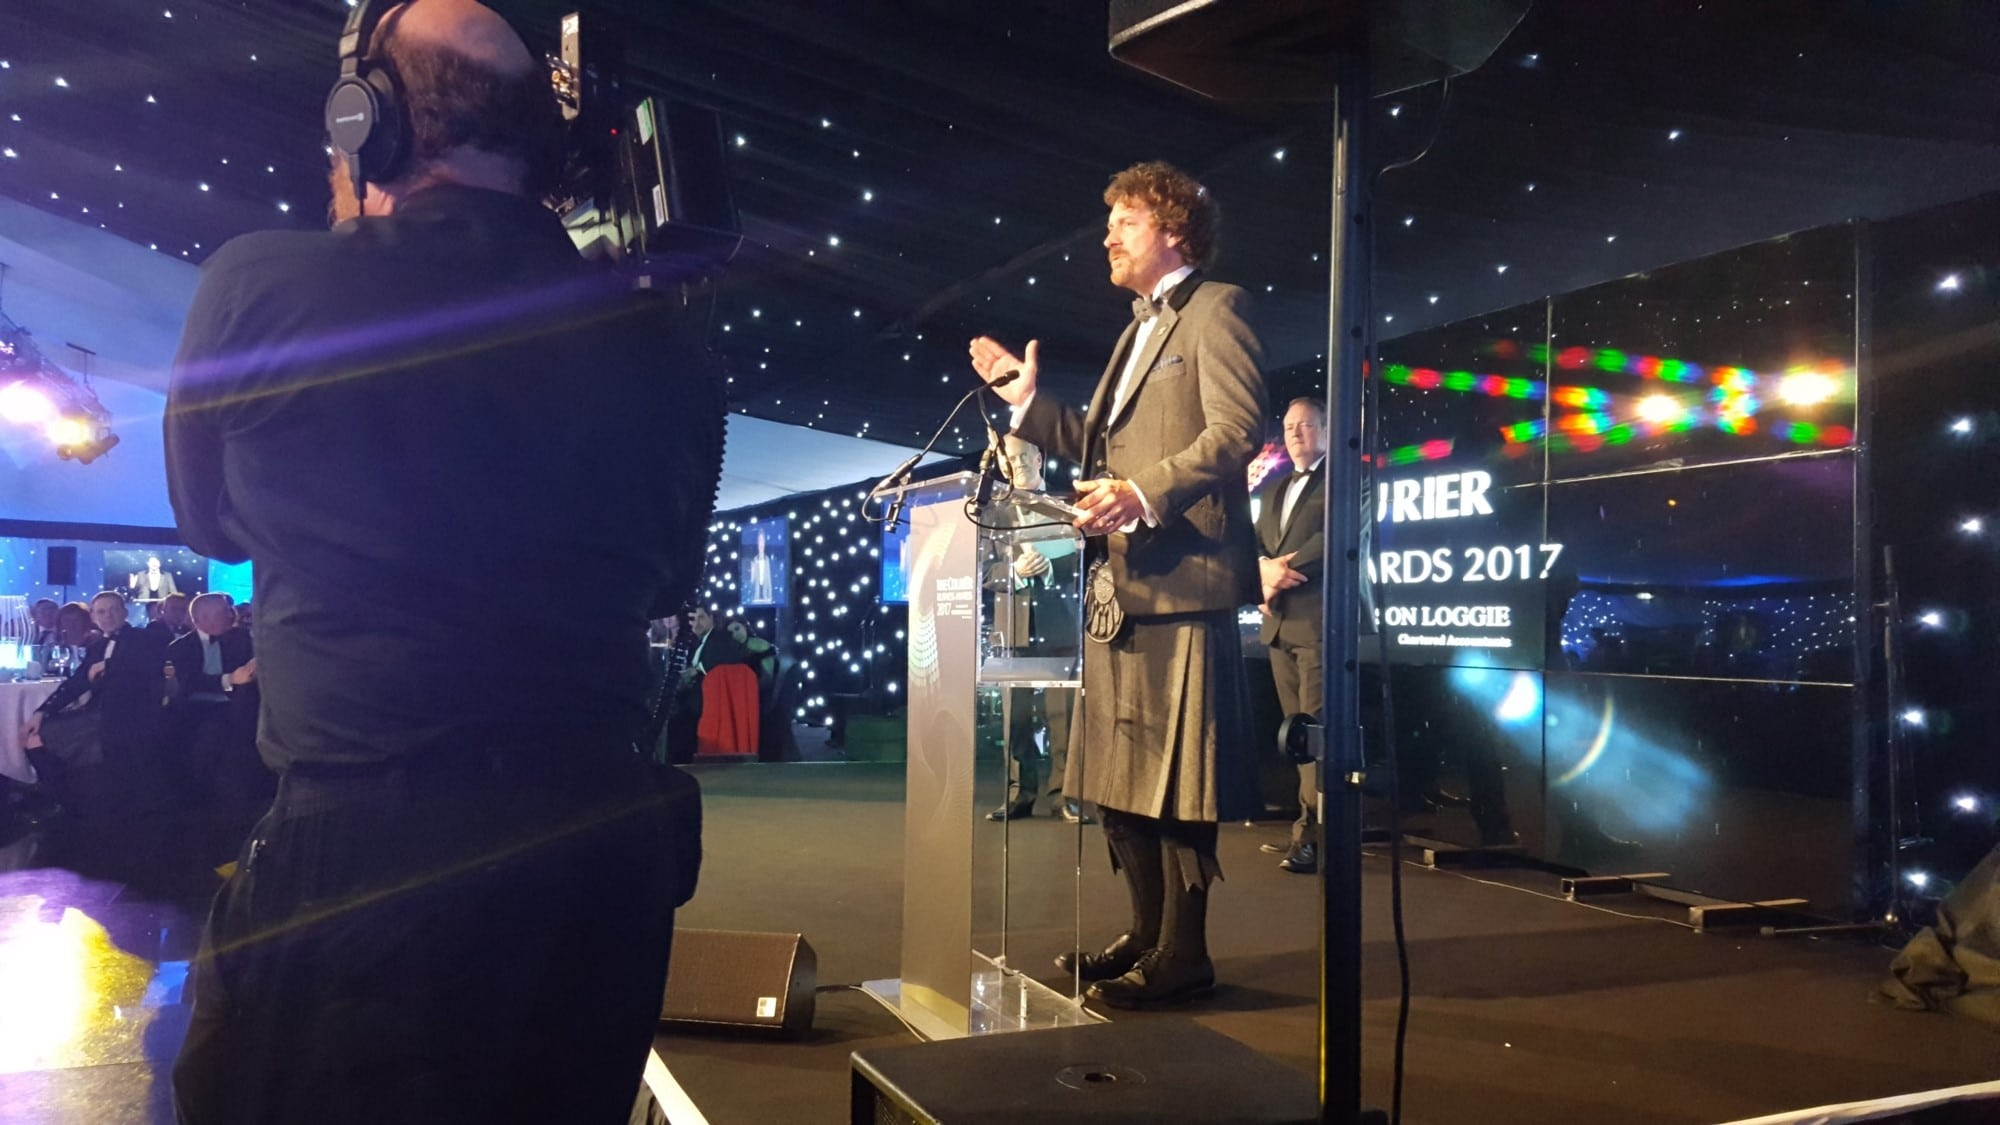 University of Dundee alumnus Chris van der Kuyl picks up his Outstanding Achievement Award at the Courier Business Awards 2017